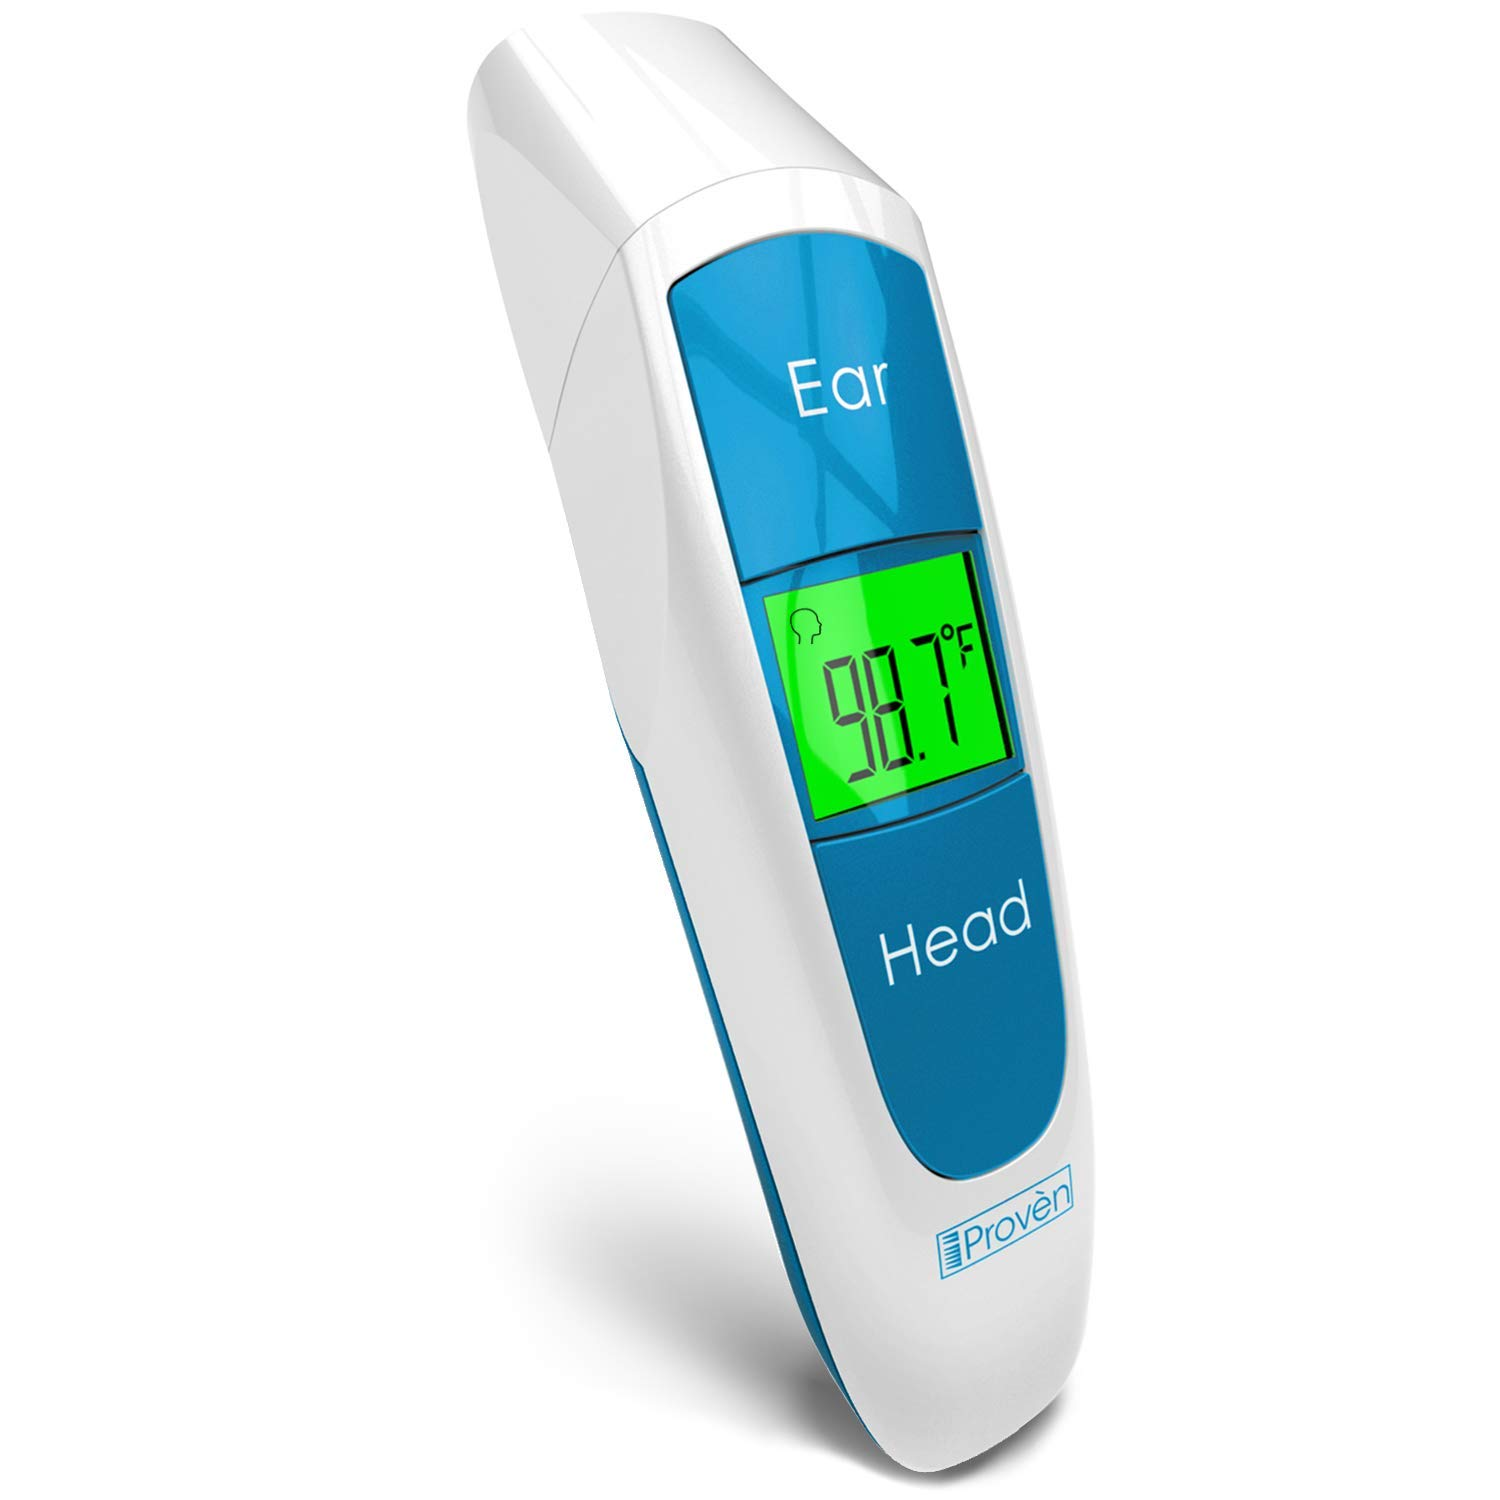 [New 2019 Model] iProven Baby Digital Thermometer Forehead and Ear - Quick Readings in 1 Second - with Fever Indicator and Backlight - DMT-316BLU by iProven